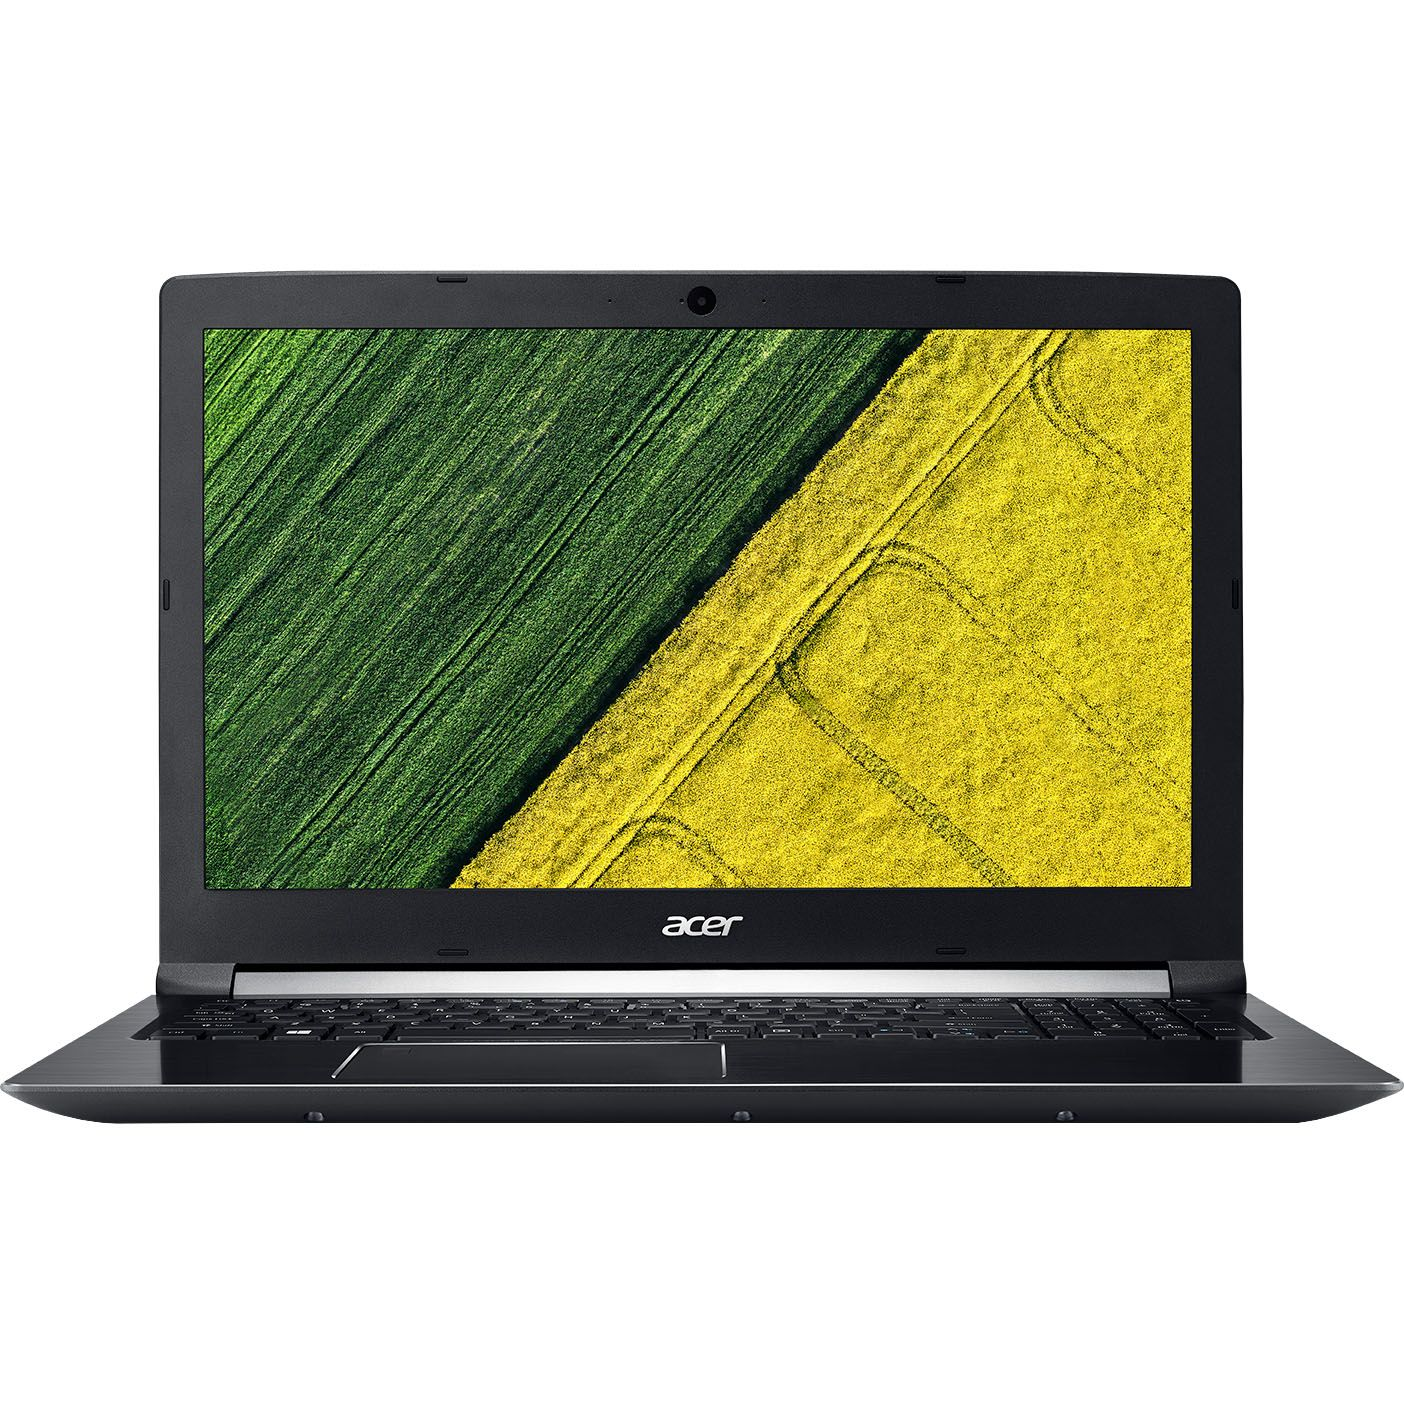 Notebook Acer Aspire A715-71G 15.6 Full HD Intel Core i7-7700HQ GTX 1050-2GB RAM 4GB HDD 1TB Linux